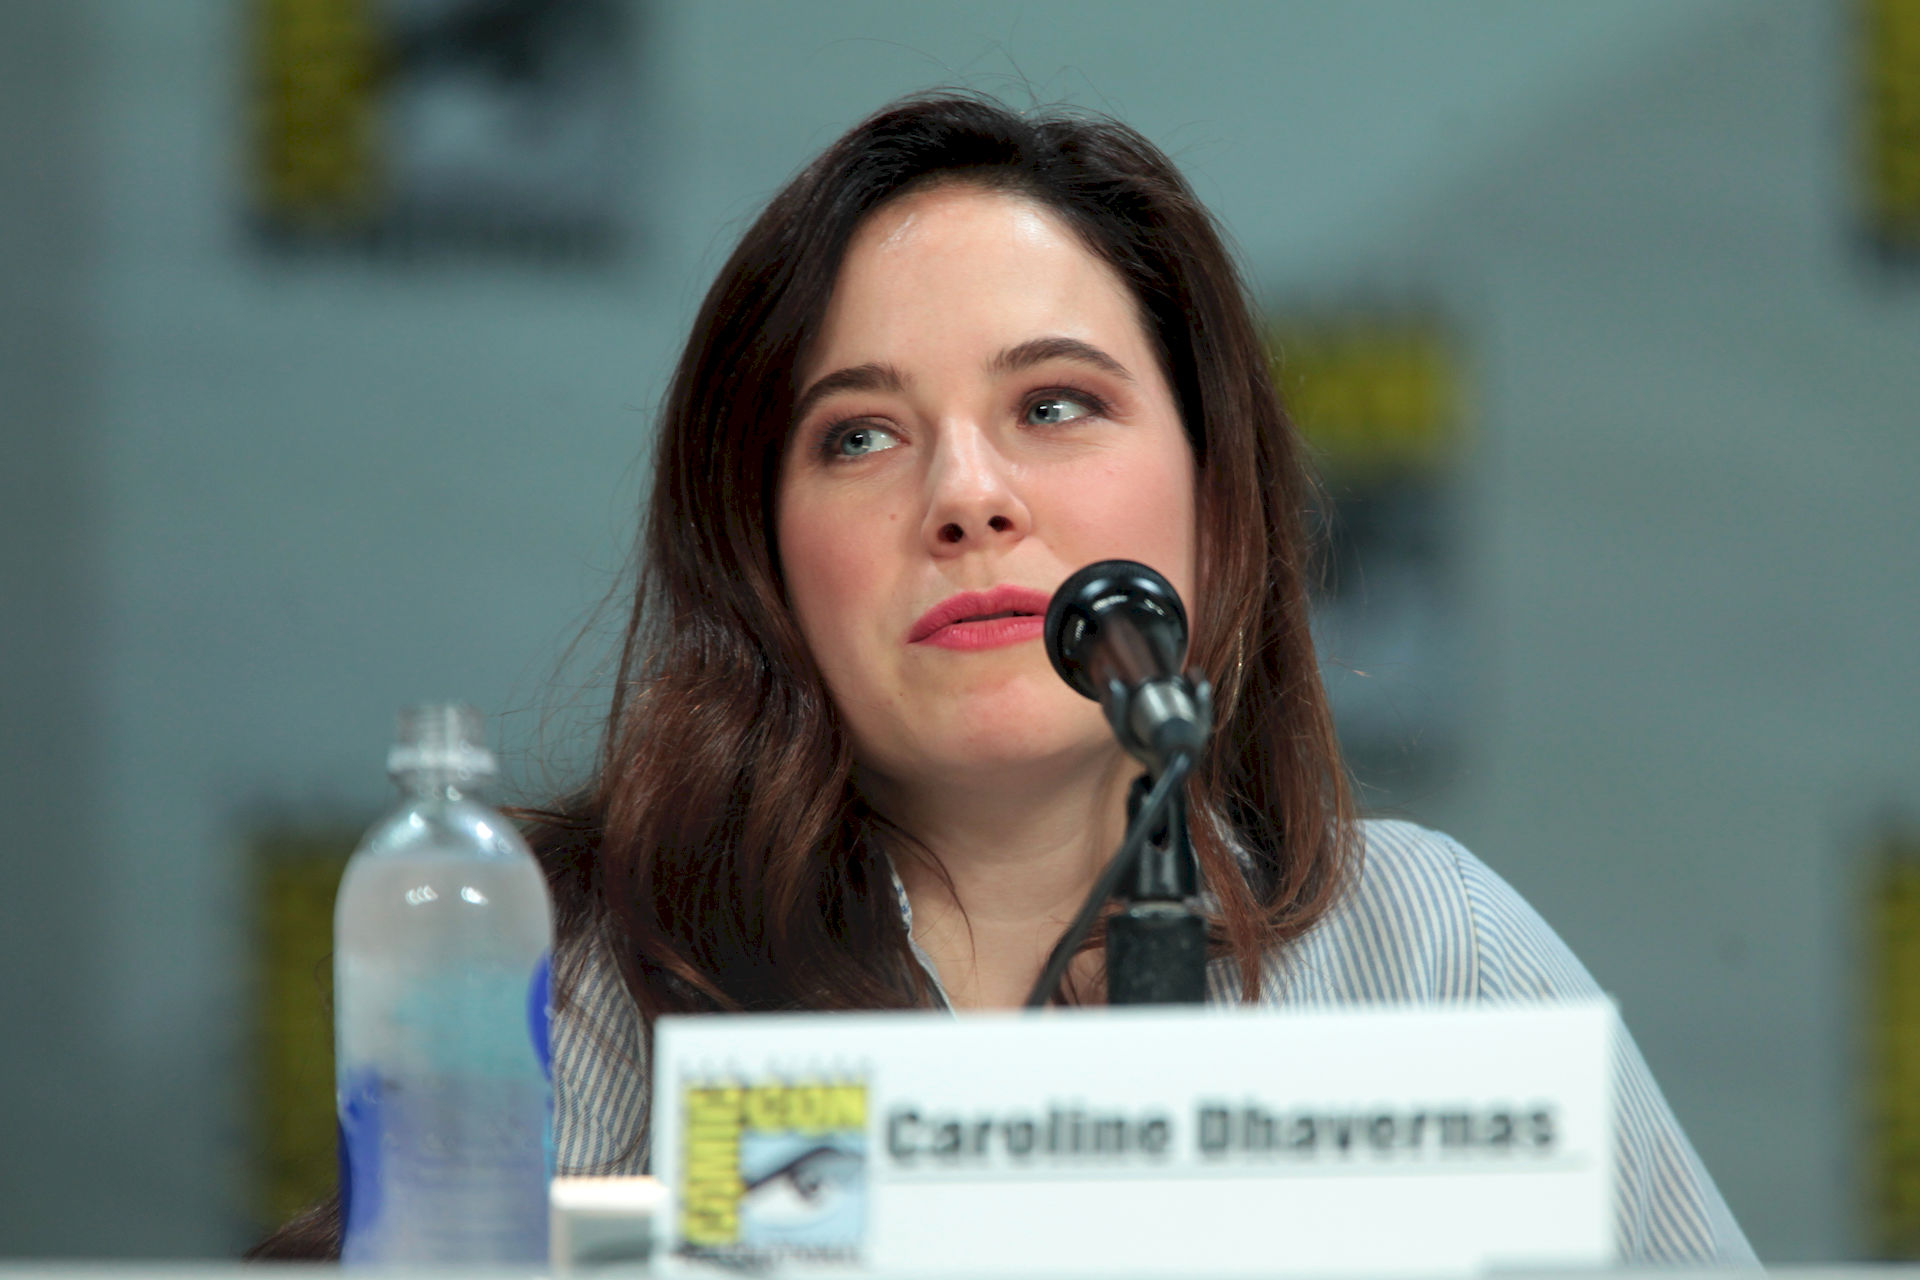 Photo of Caroline Dhavernas: Canadian actress